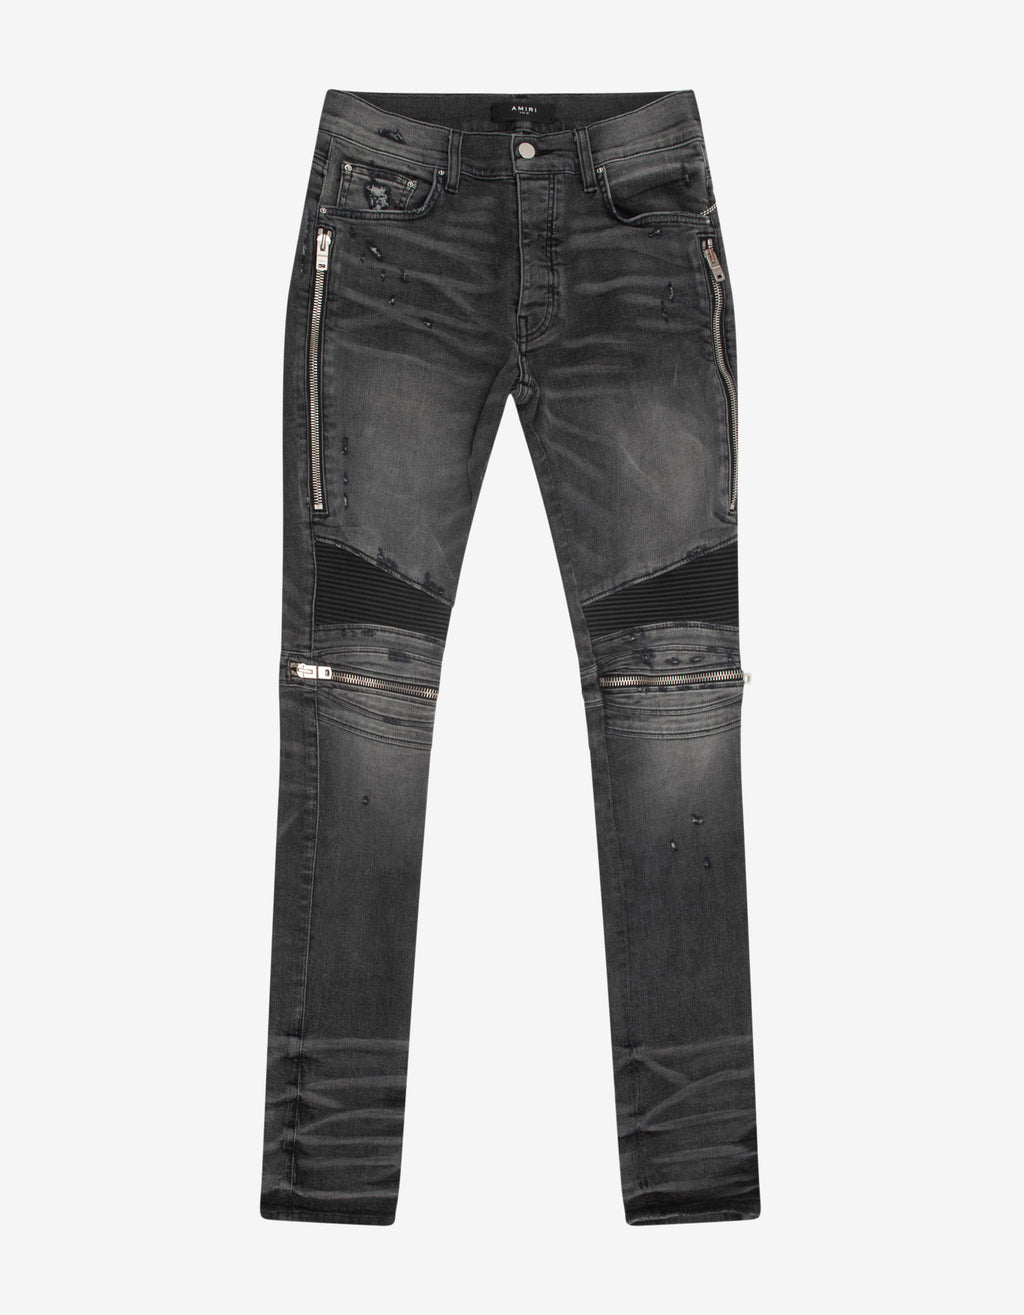 MX2 Faded Grey Leather Insert Skinny Jeans